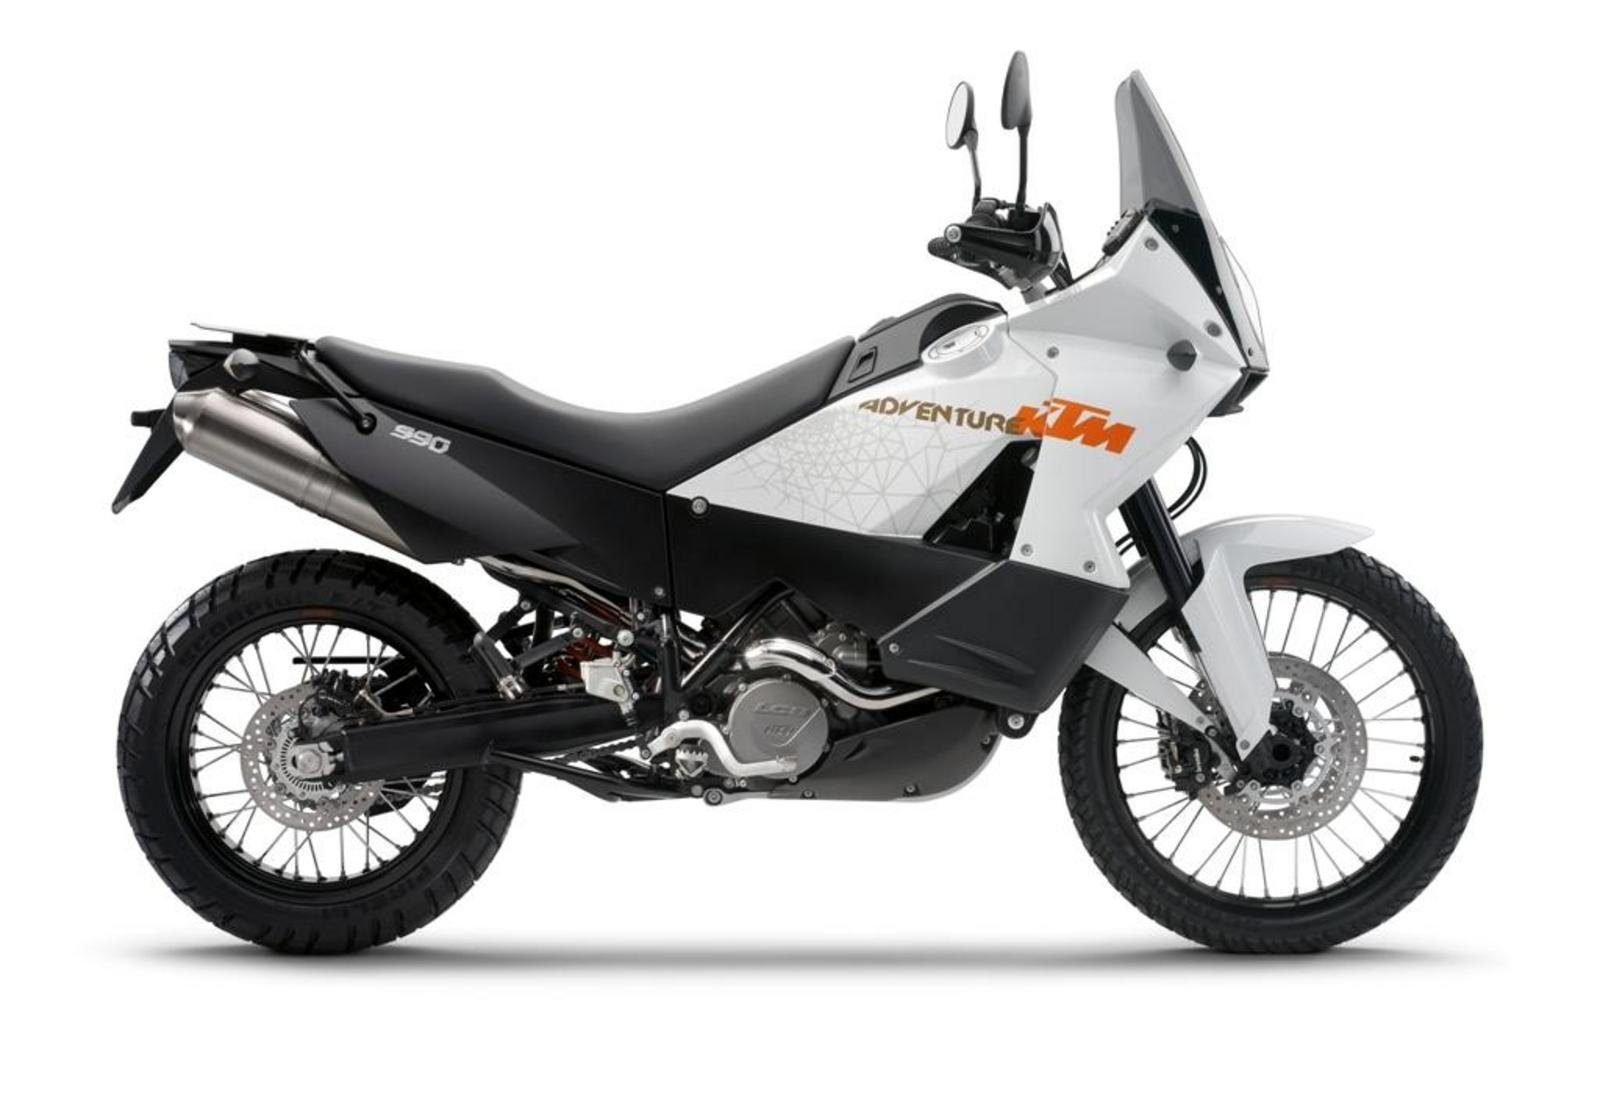 Ktm Fuel Injection Price